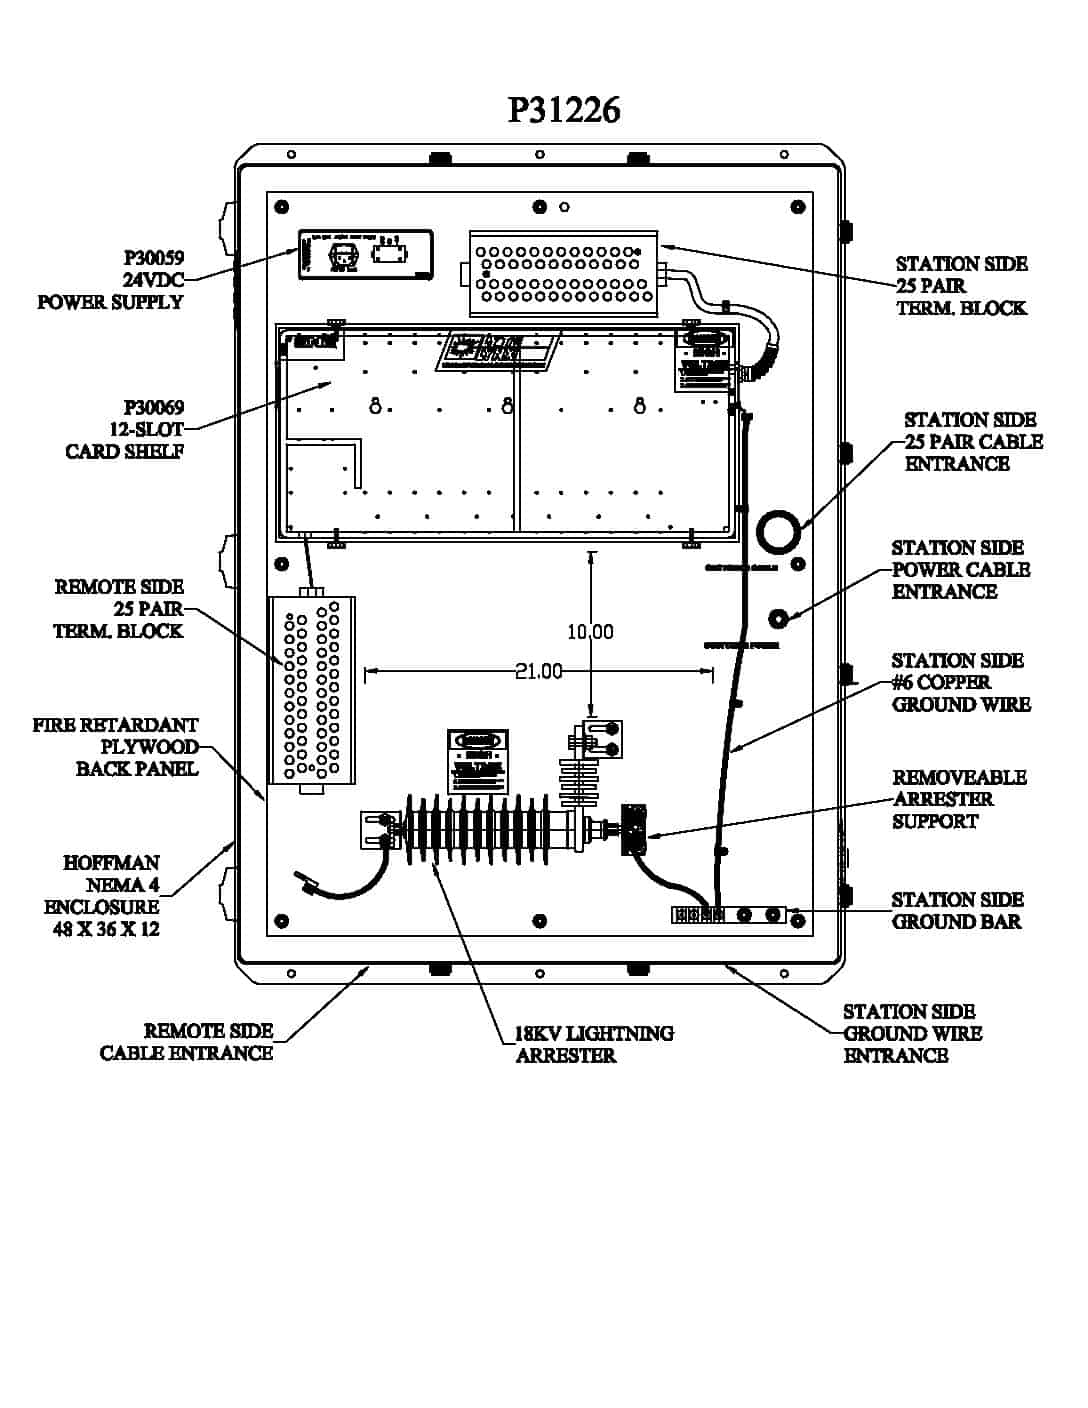 P31226 Turnkey Protection Packages – 12 slot PDF thumbnail